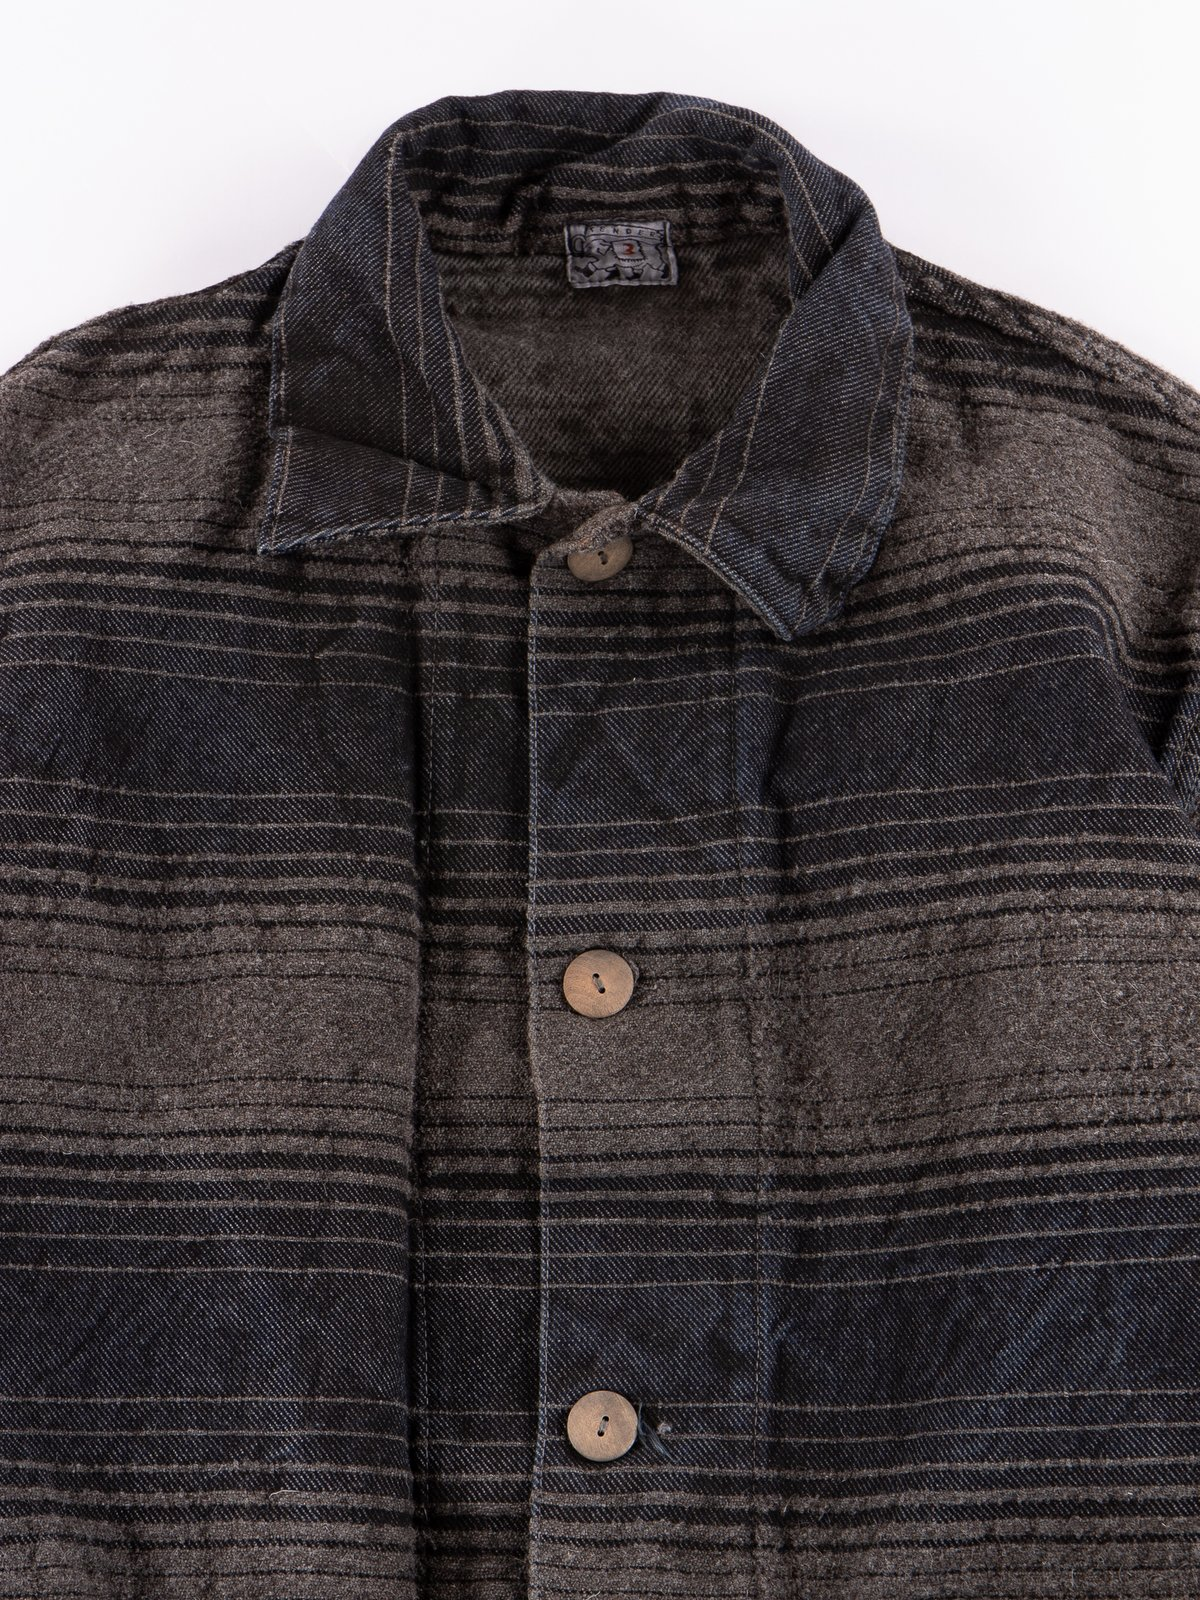 Indian Black Dye Doppler Stripe Collared Shepherd's Coat - Image 3